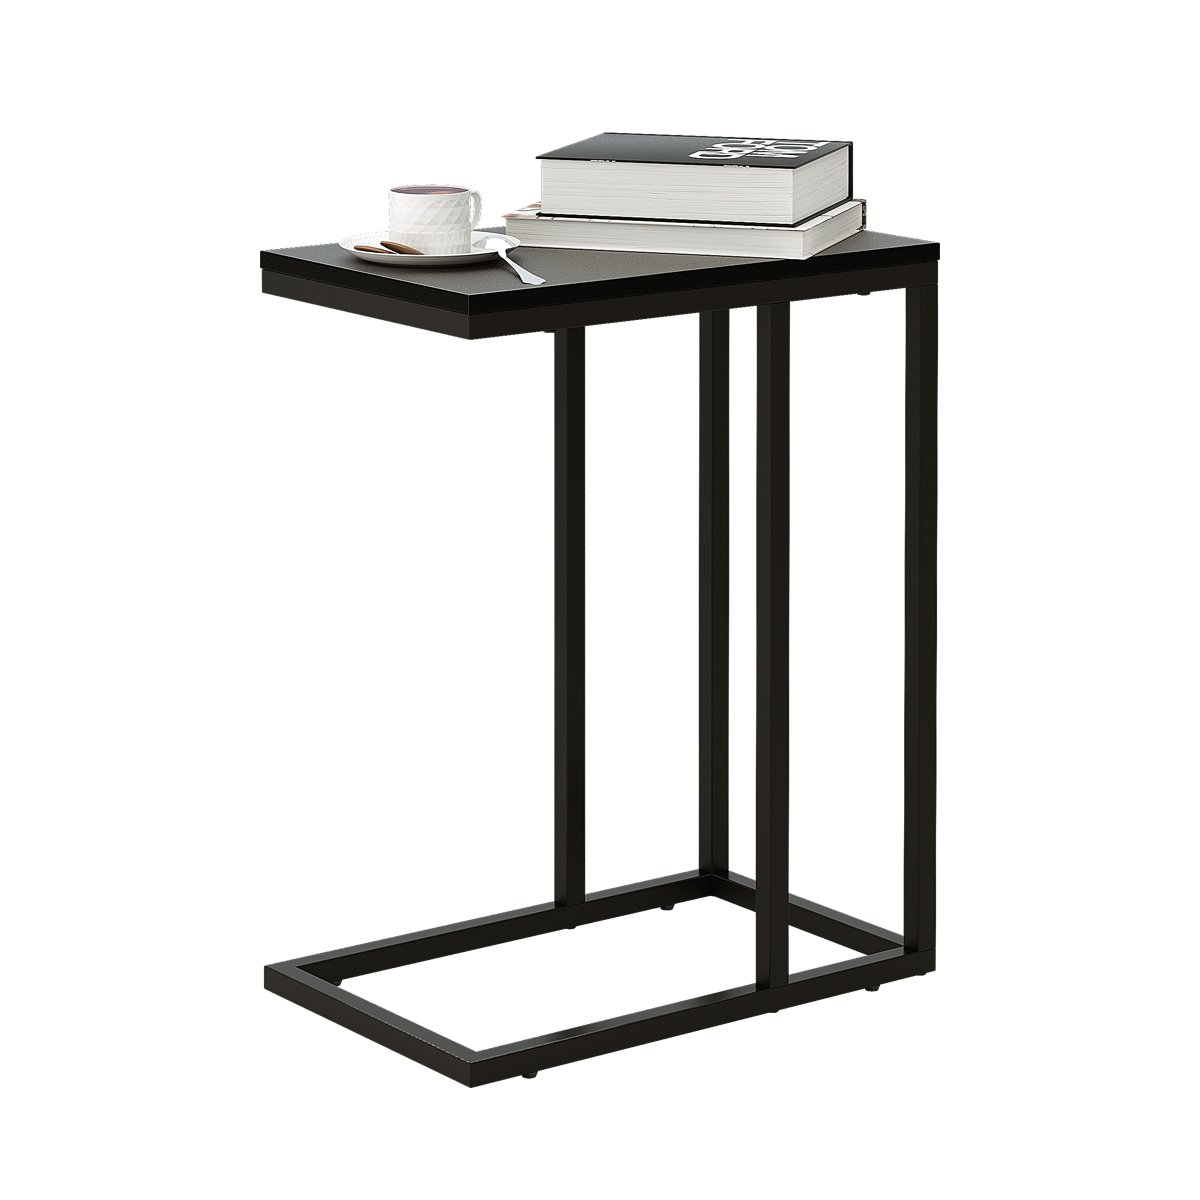 WLIVE C Shaped End Table, Snack Side Table for Sofa Couch and Bed, Black by WLIVE